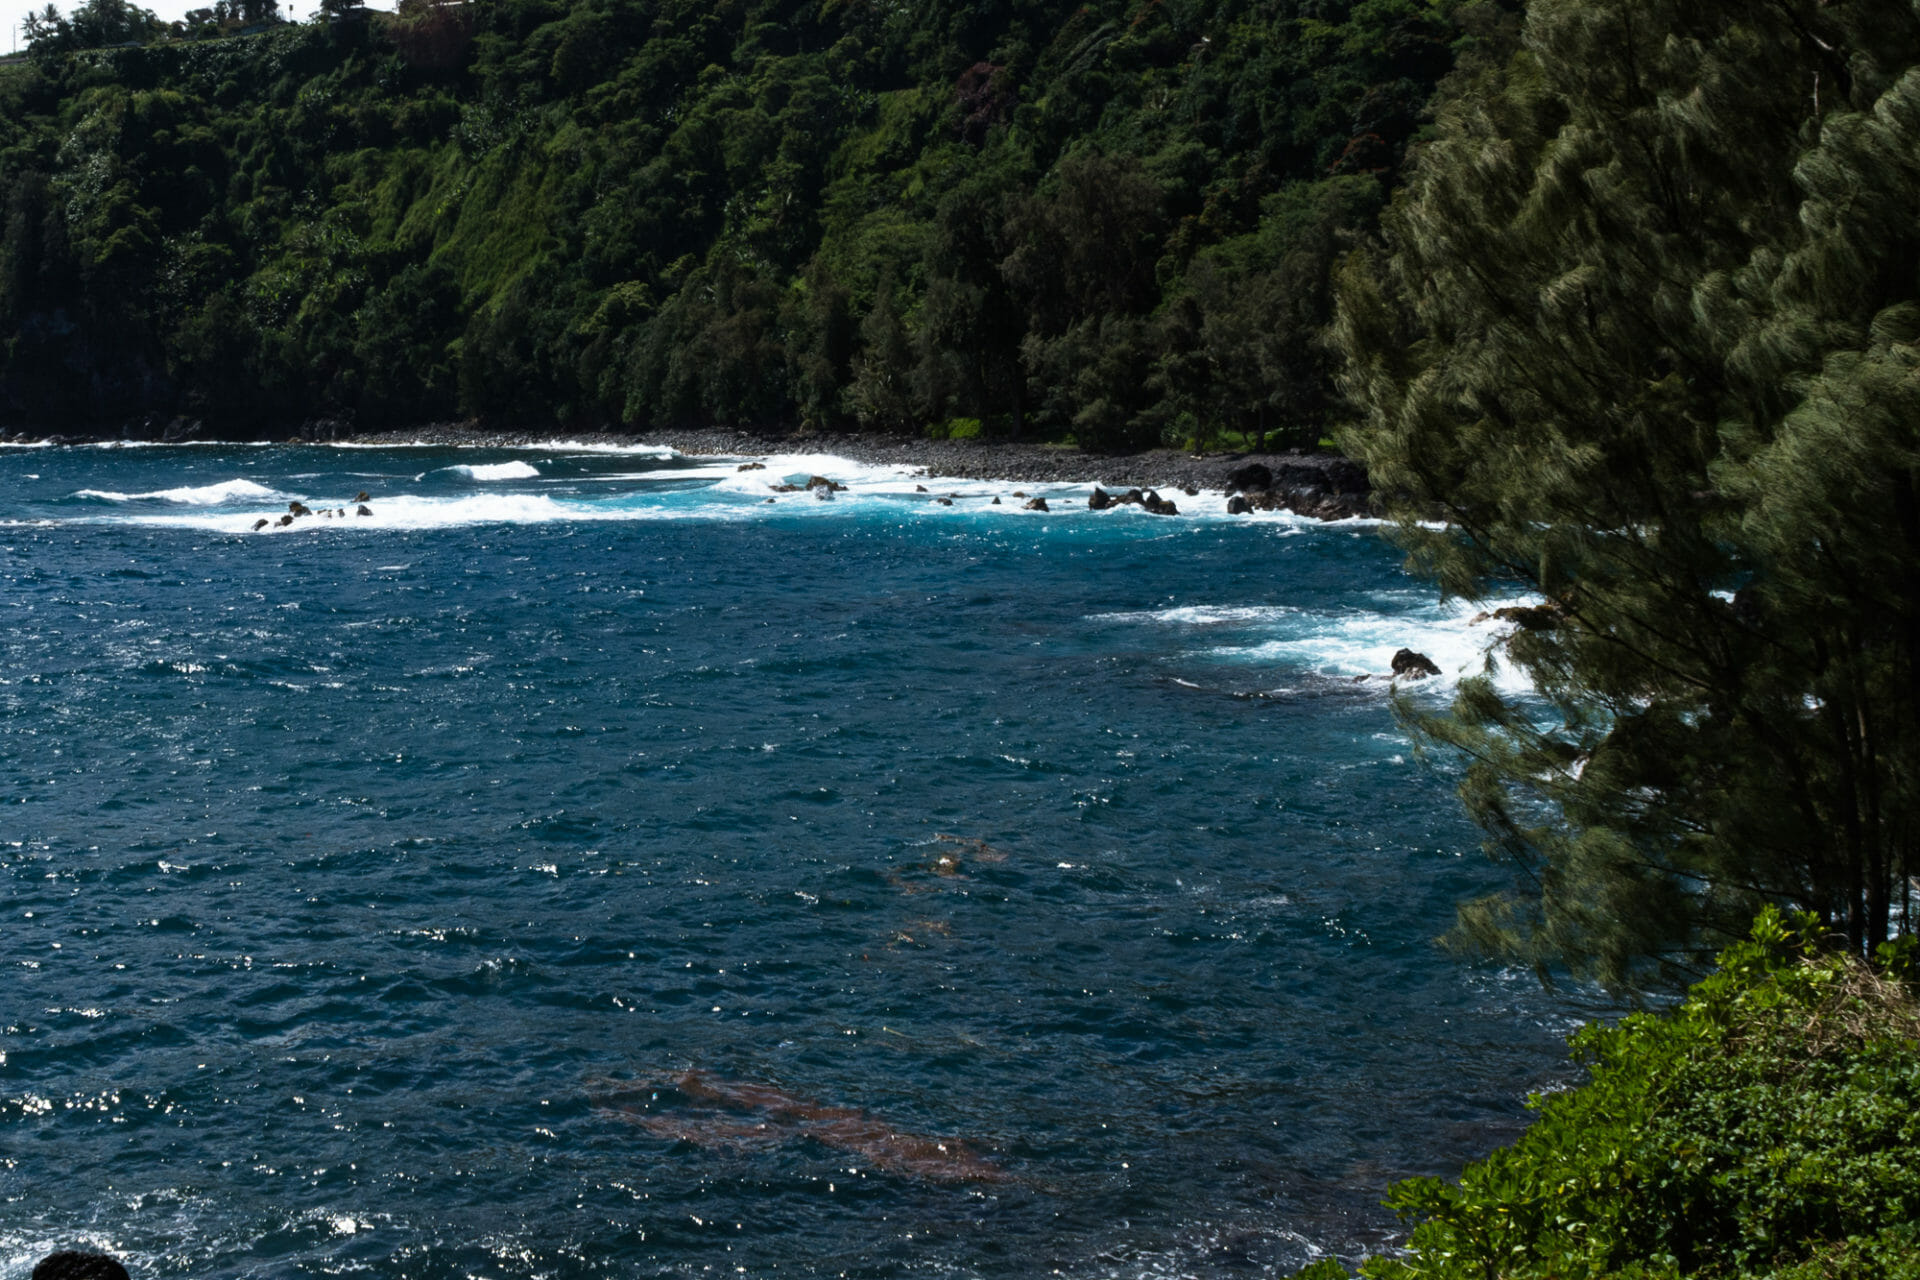 Beautiful blue waters at Lapahoehoe on the Big Island